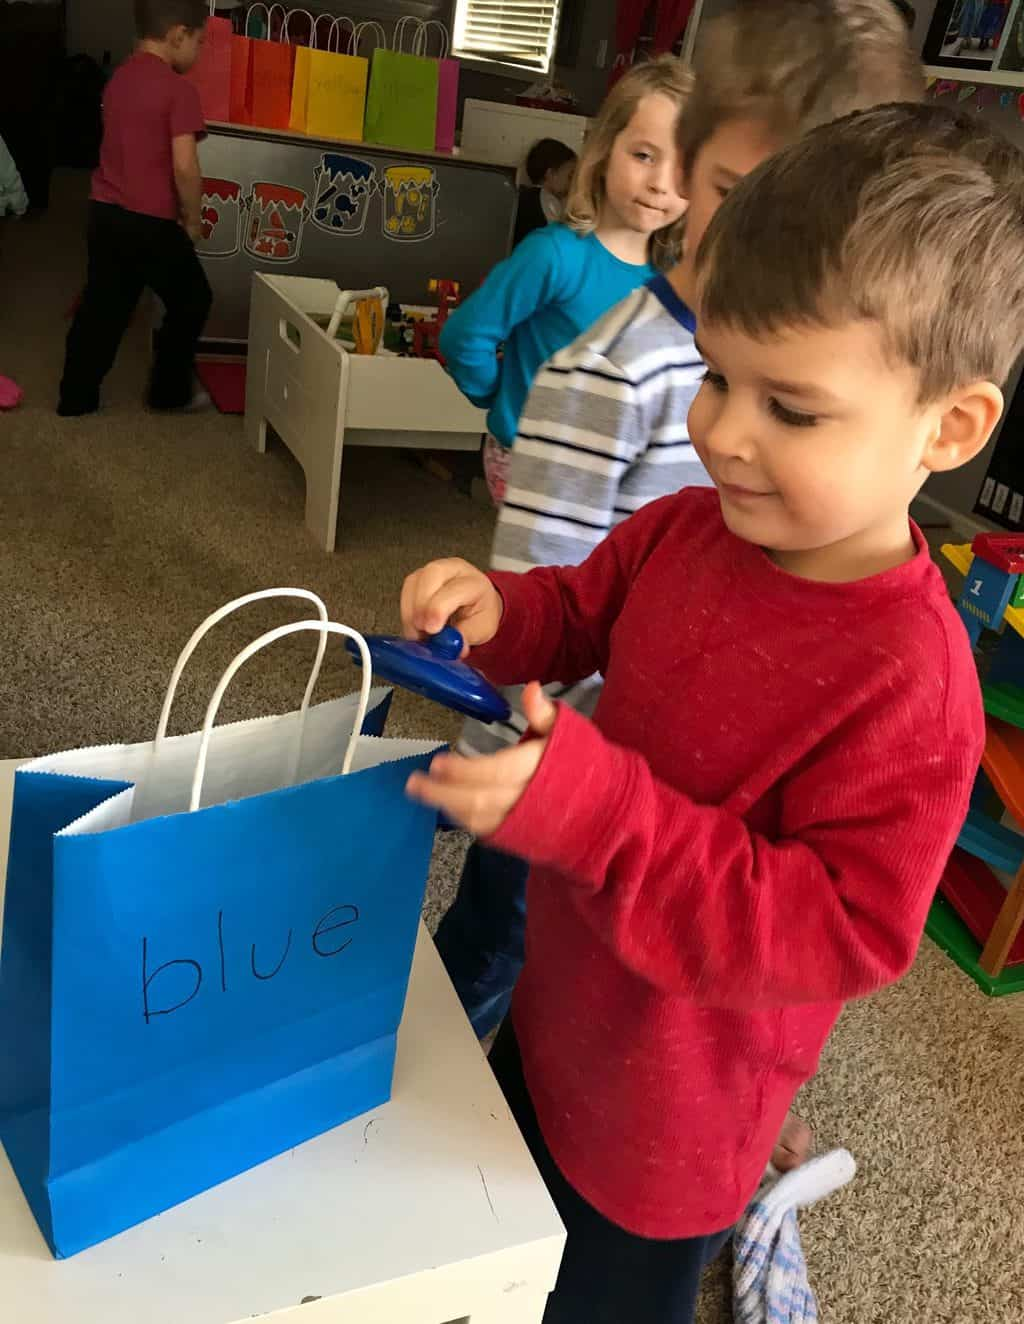 young boy with blue gift bag